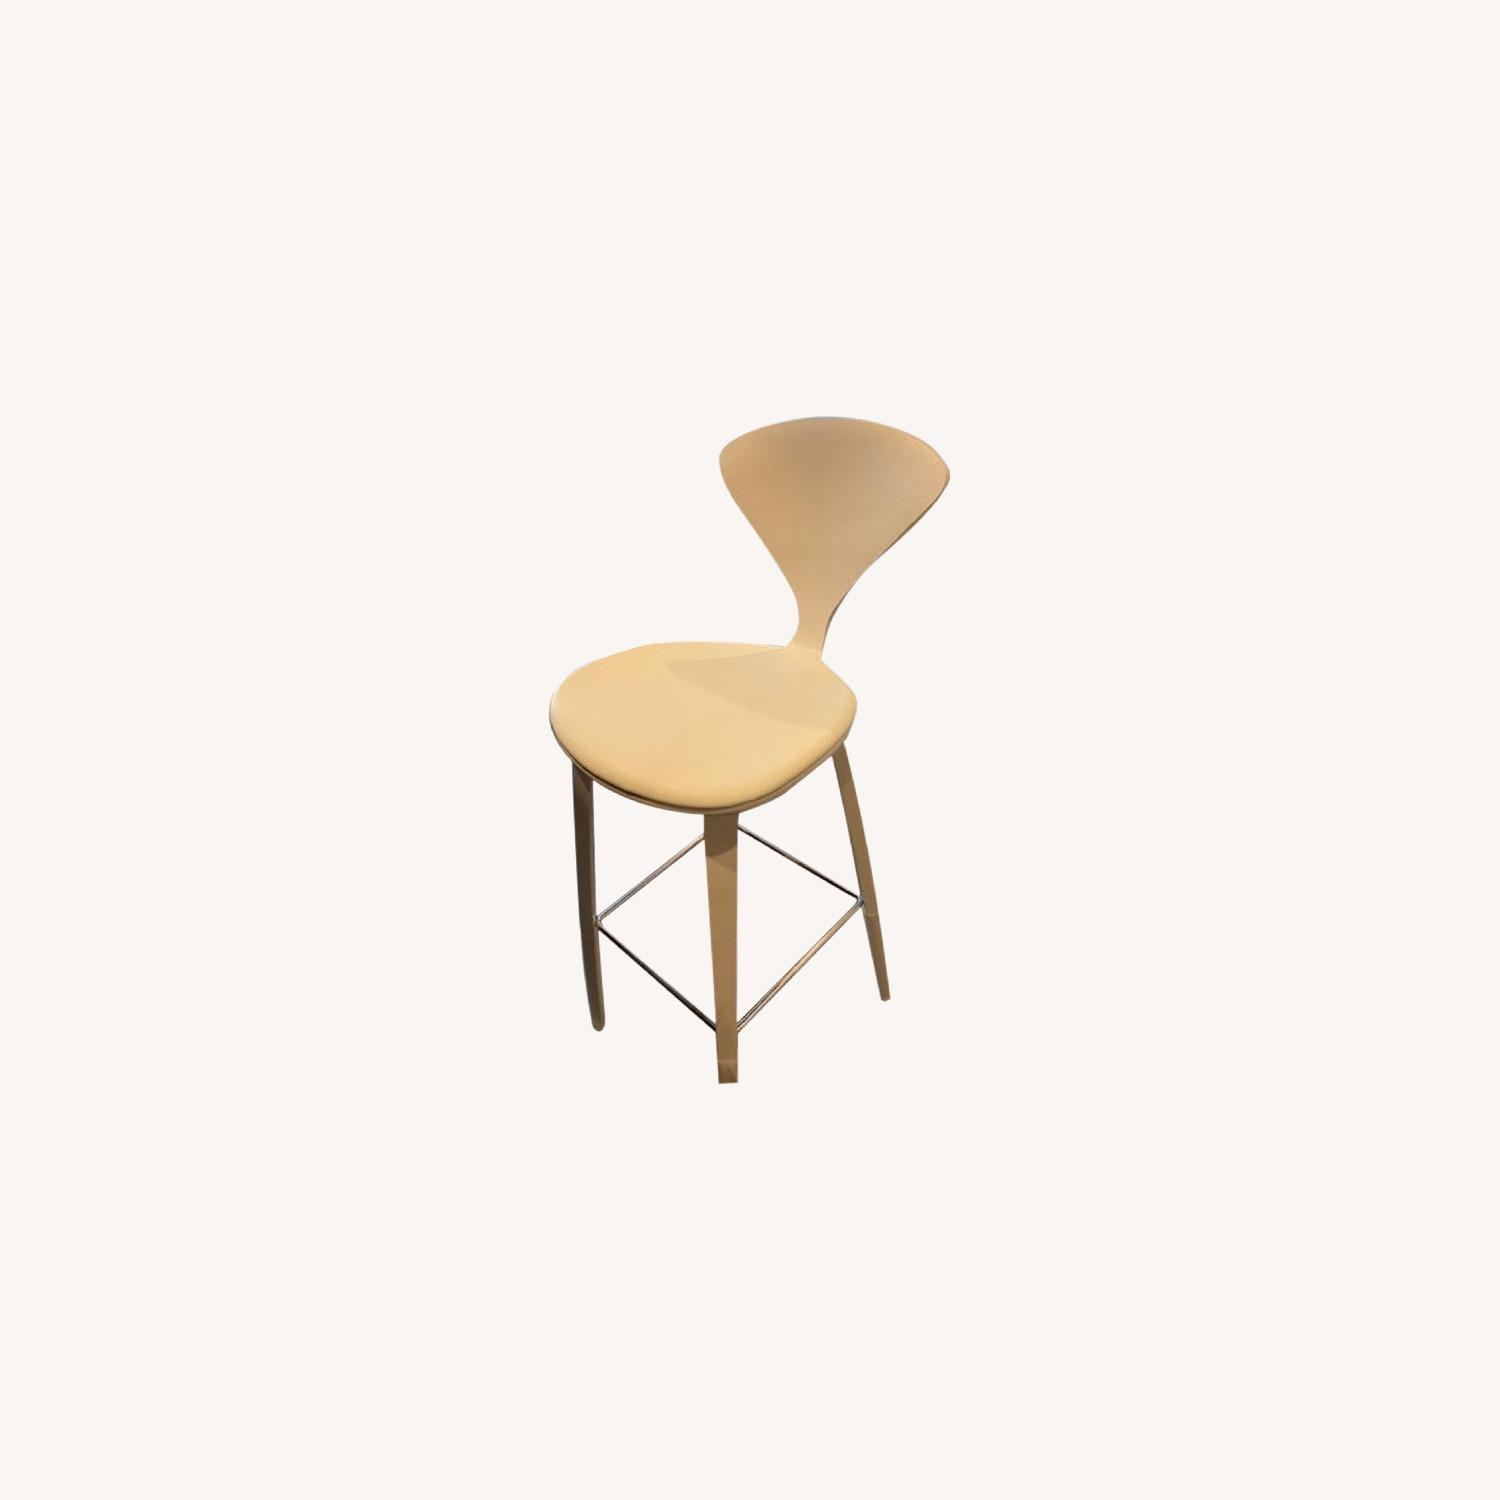 Cherner Stool with Leather Seat Pad - image-0